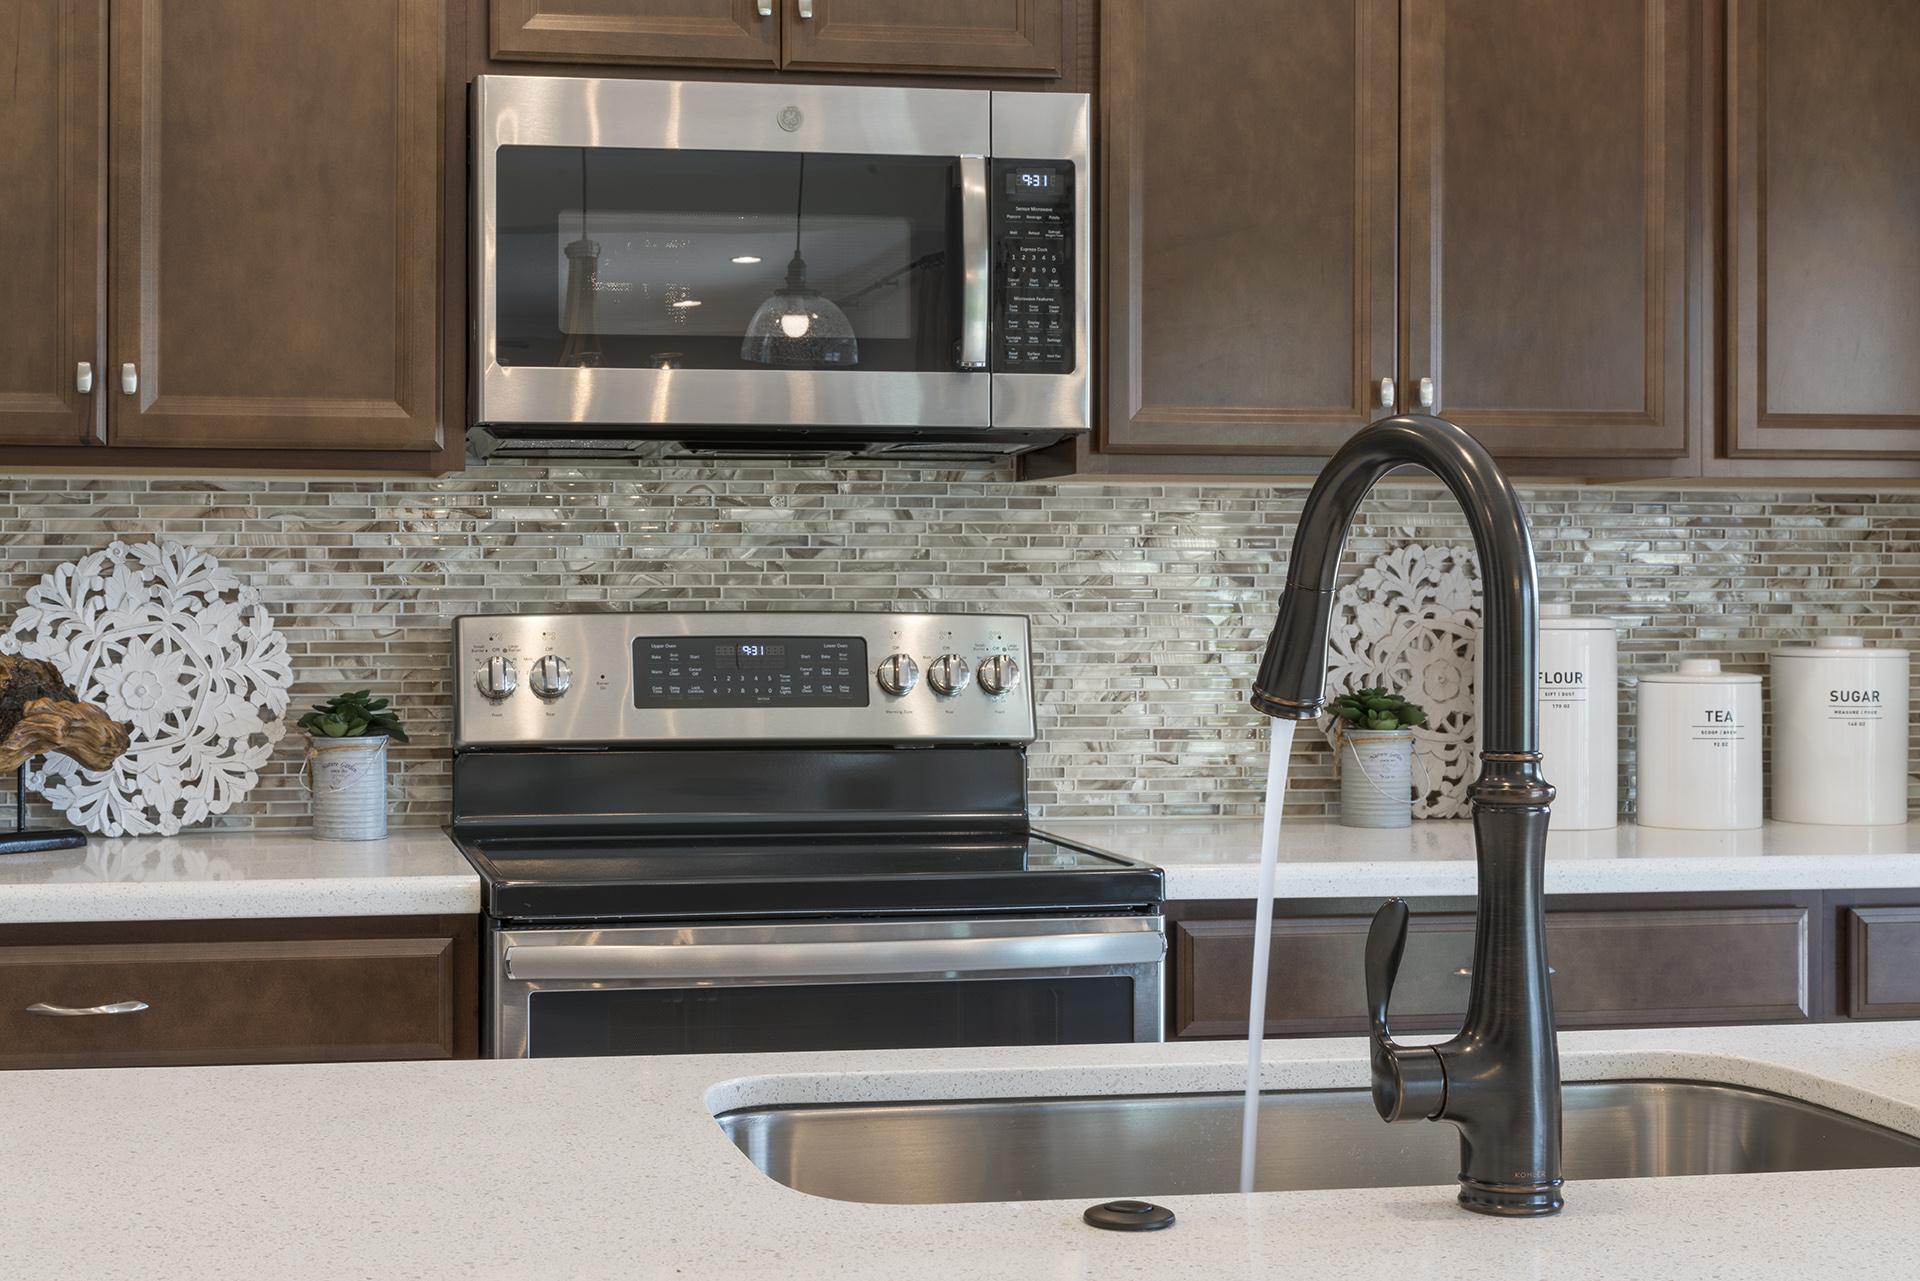 Kitchen featured in the Newcastle Premier By Hanover Family Builders in Orlando, FL